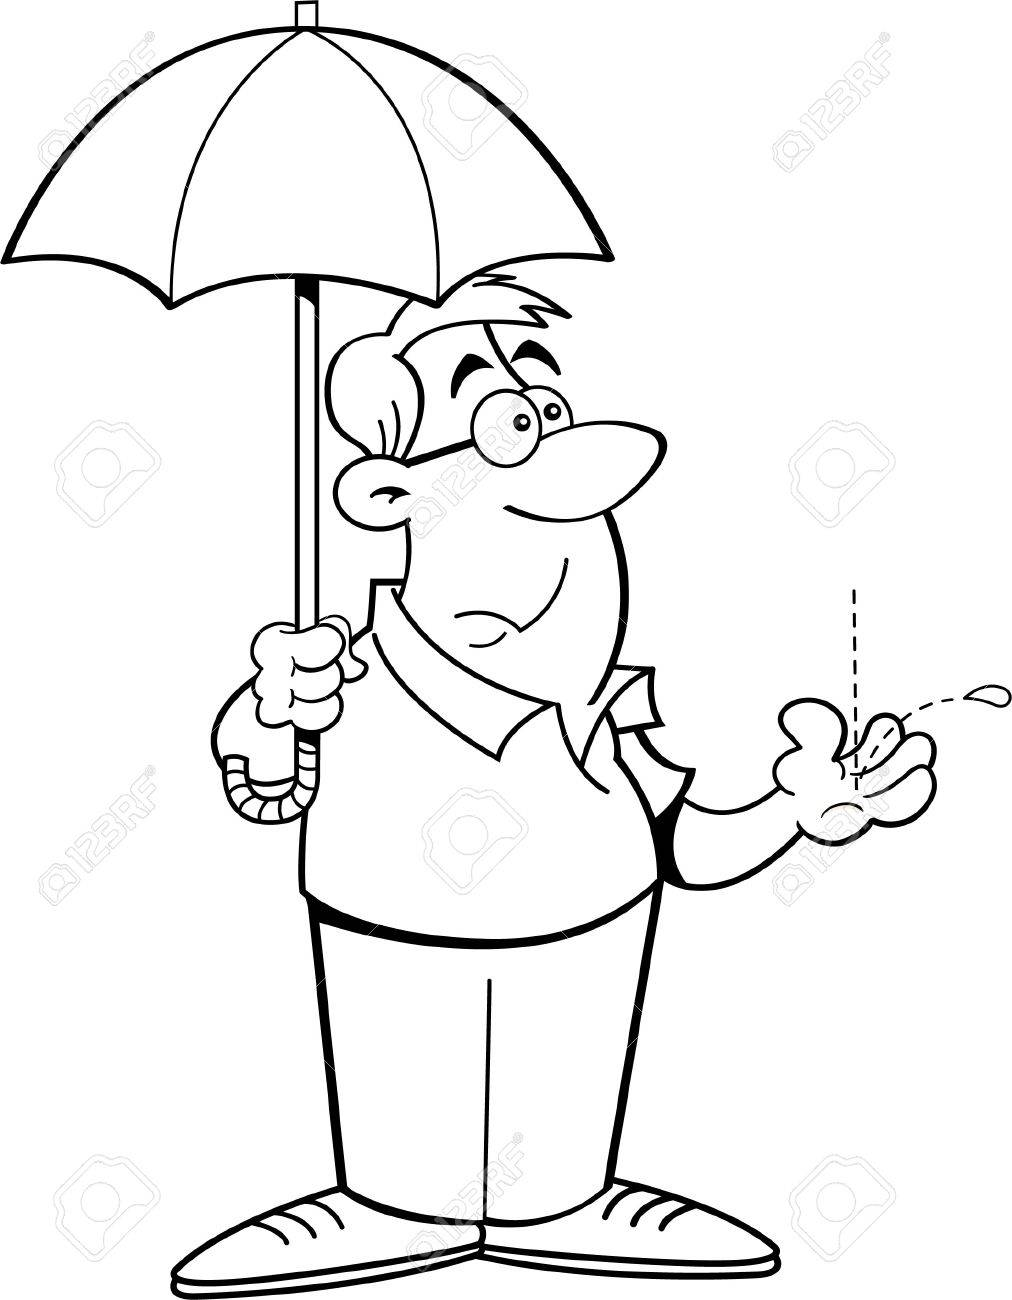 Black And White Illustration Of A Man Holding An Umbrella Royalty